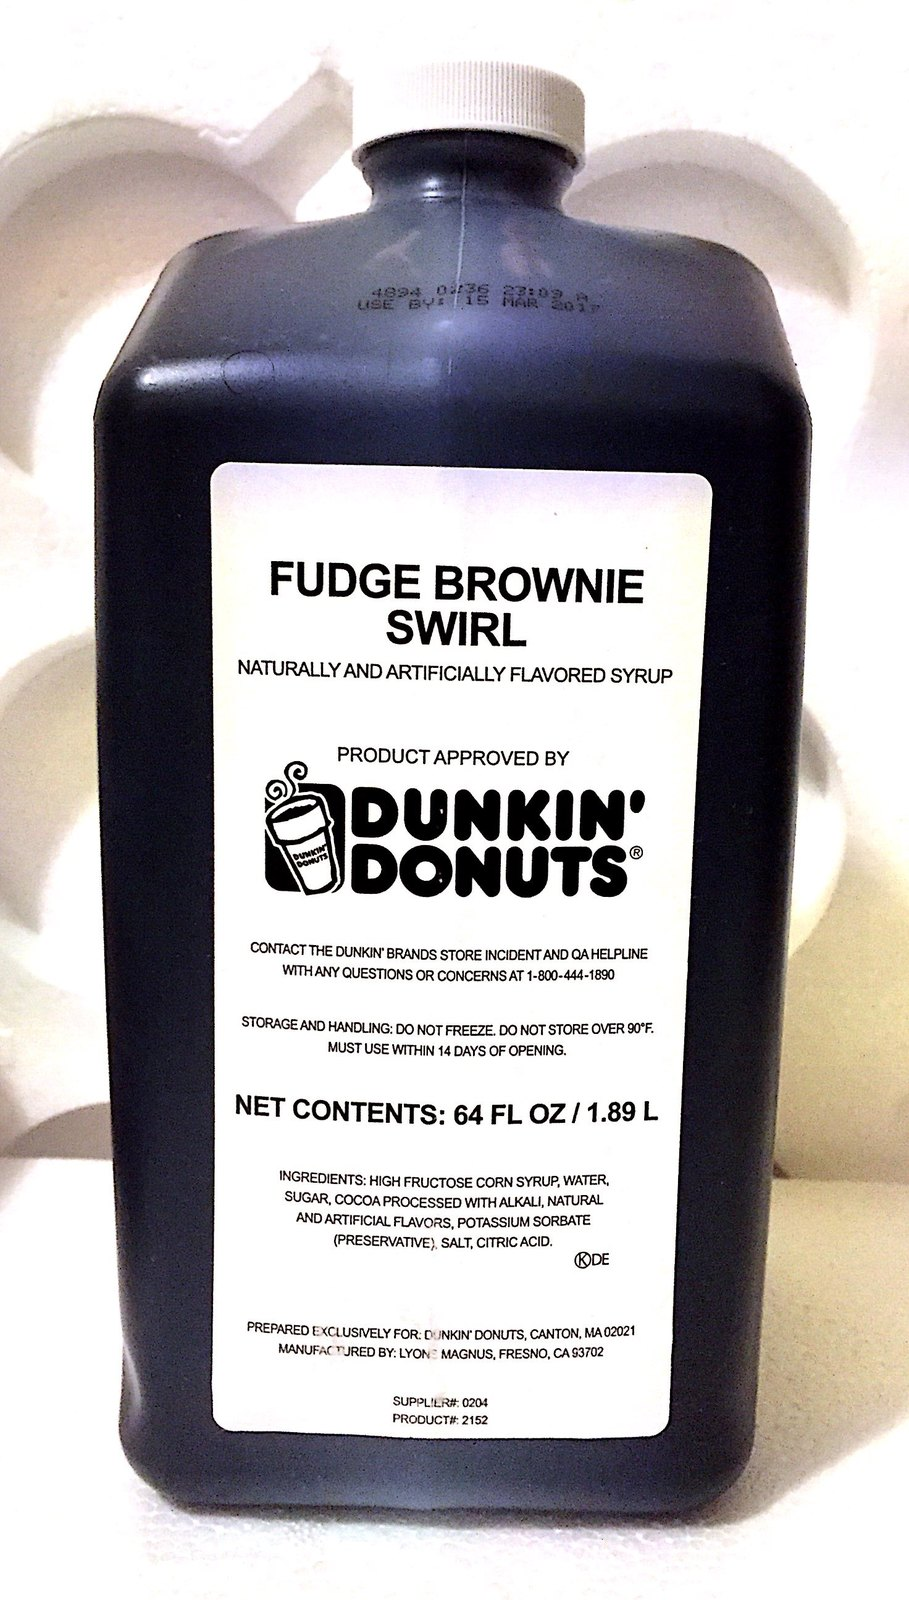 Dunkin Donuts Fudge Brownie Swirl Syrup 64oz and 50 similar items